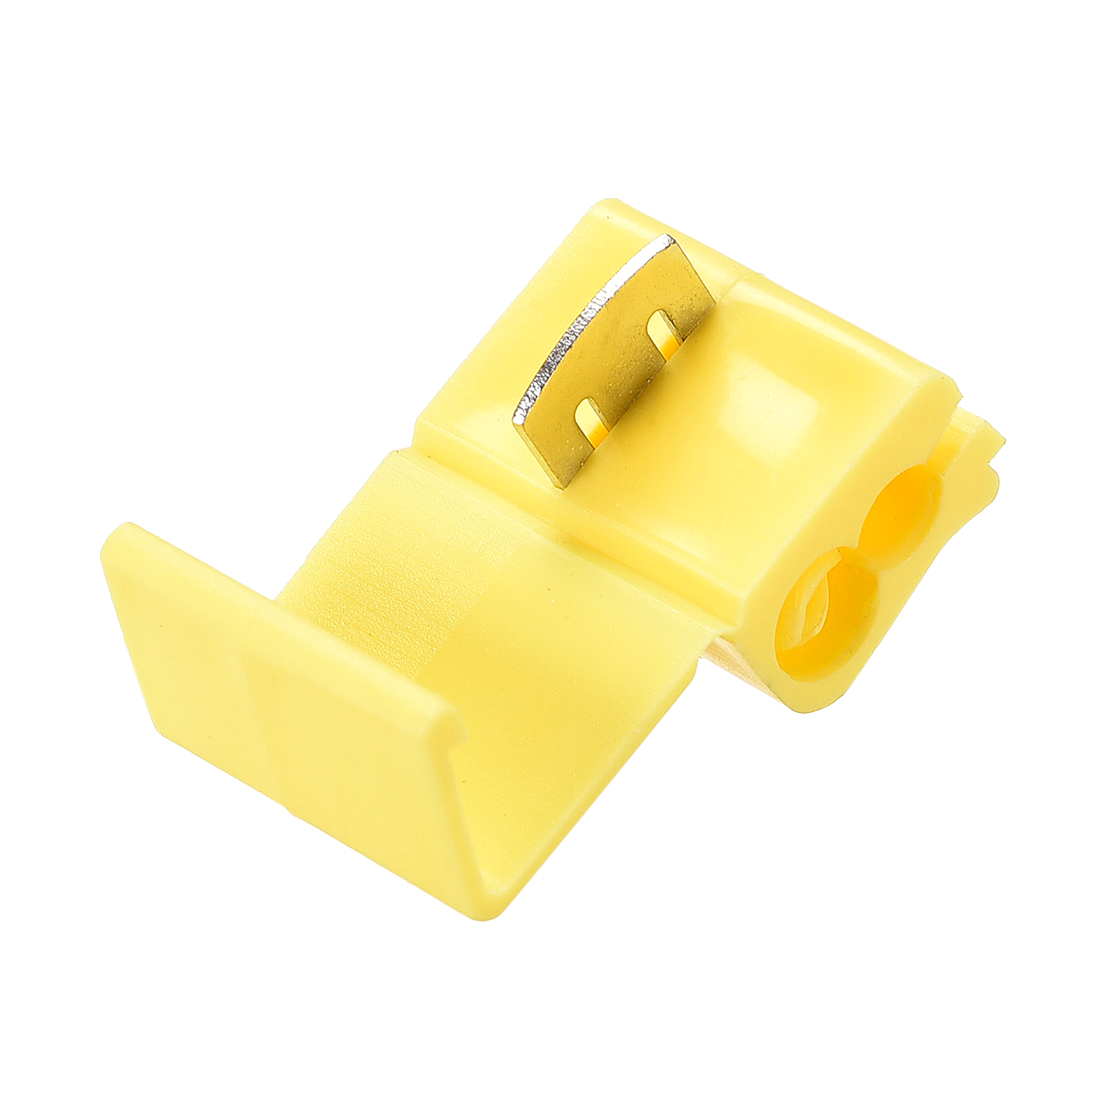 Wire Splice Connector Snap Wire Connector Yellow for 12-10 AWG 150 Pcs